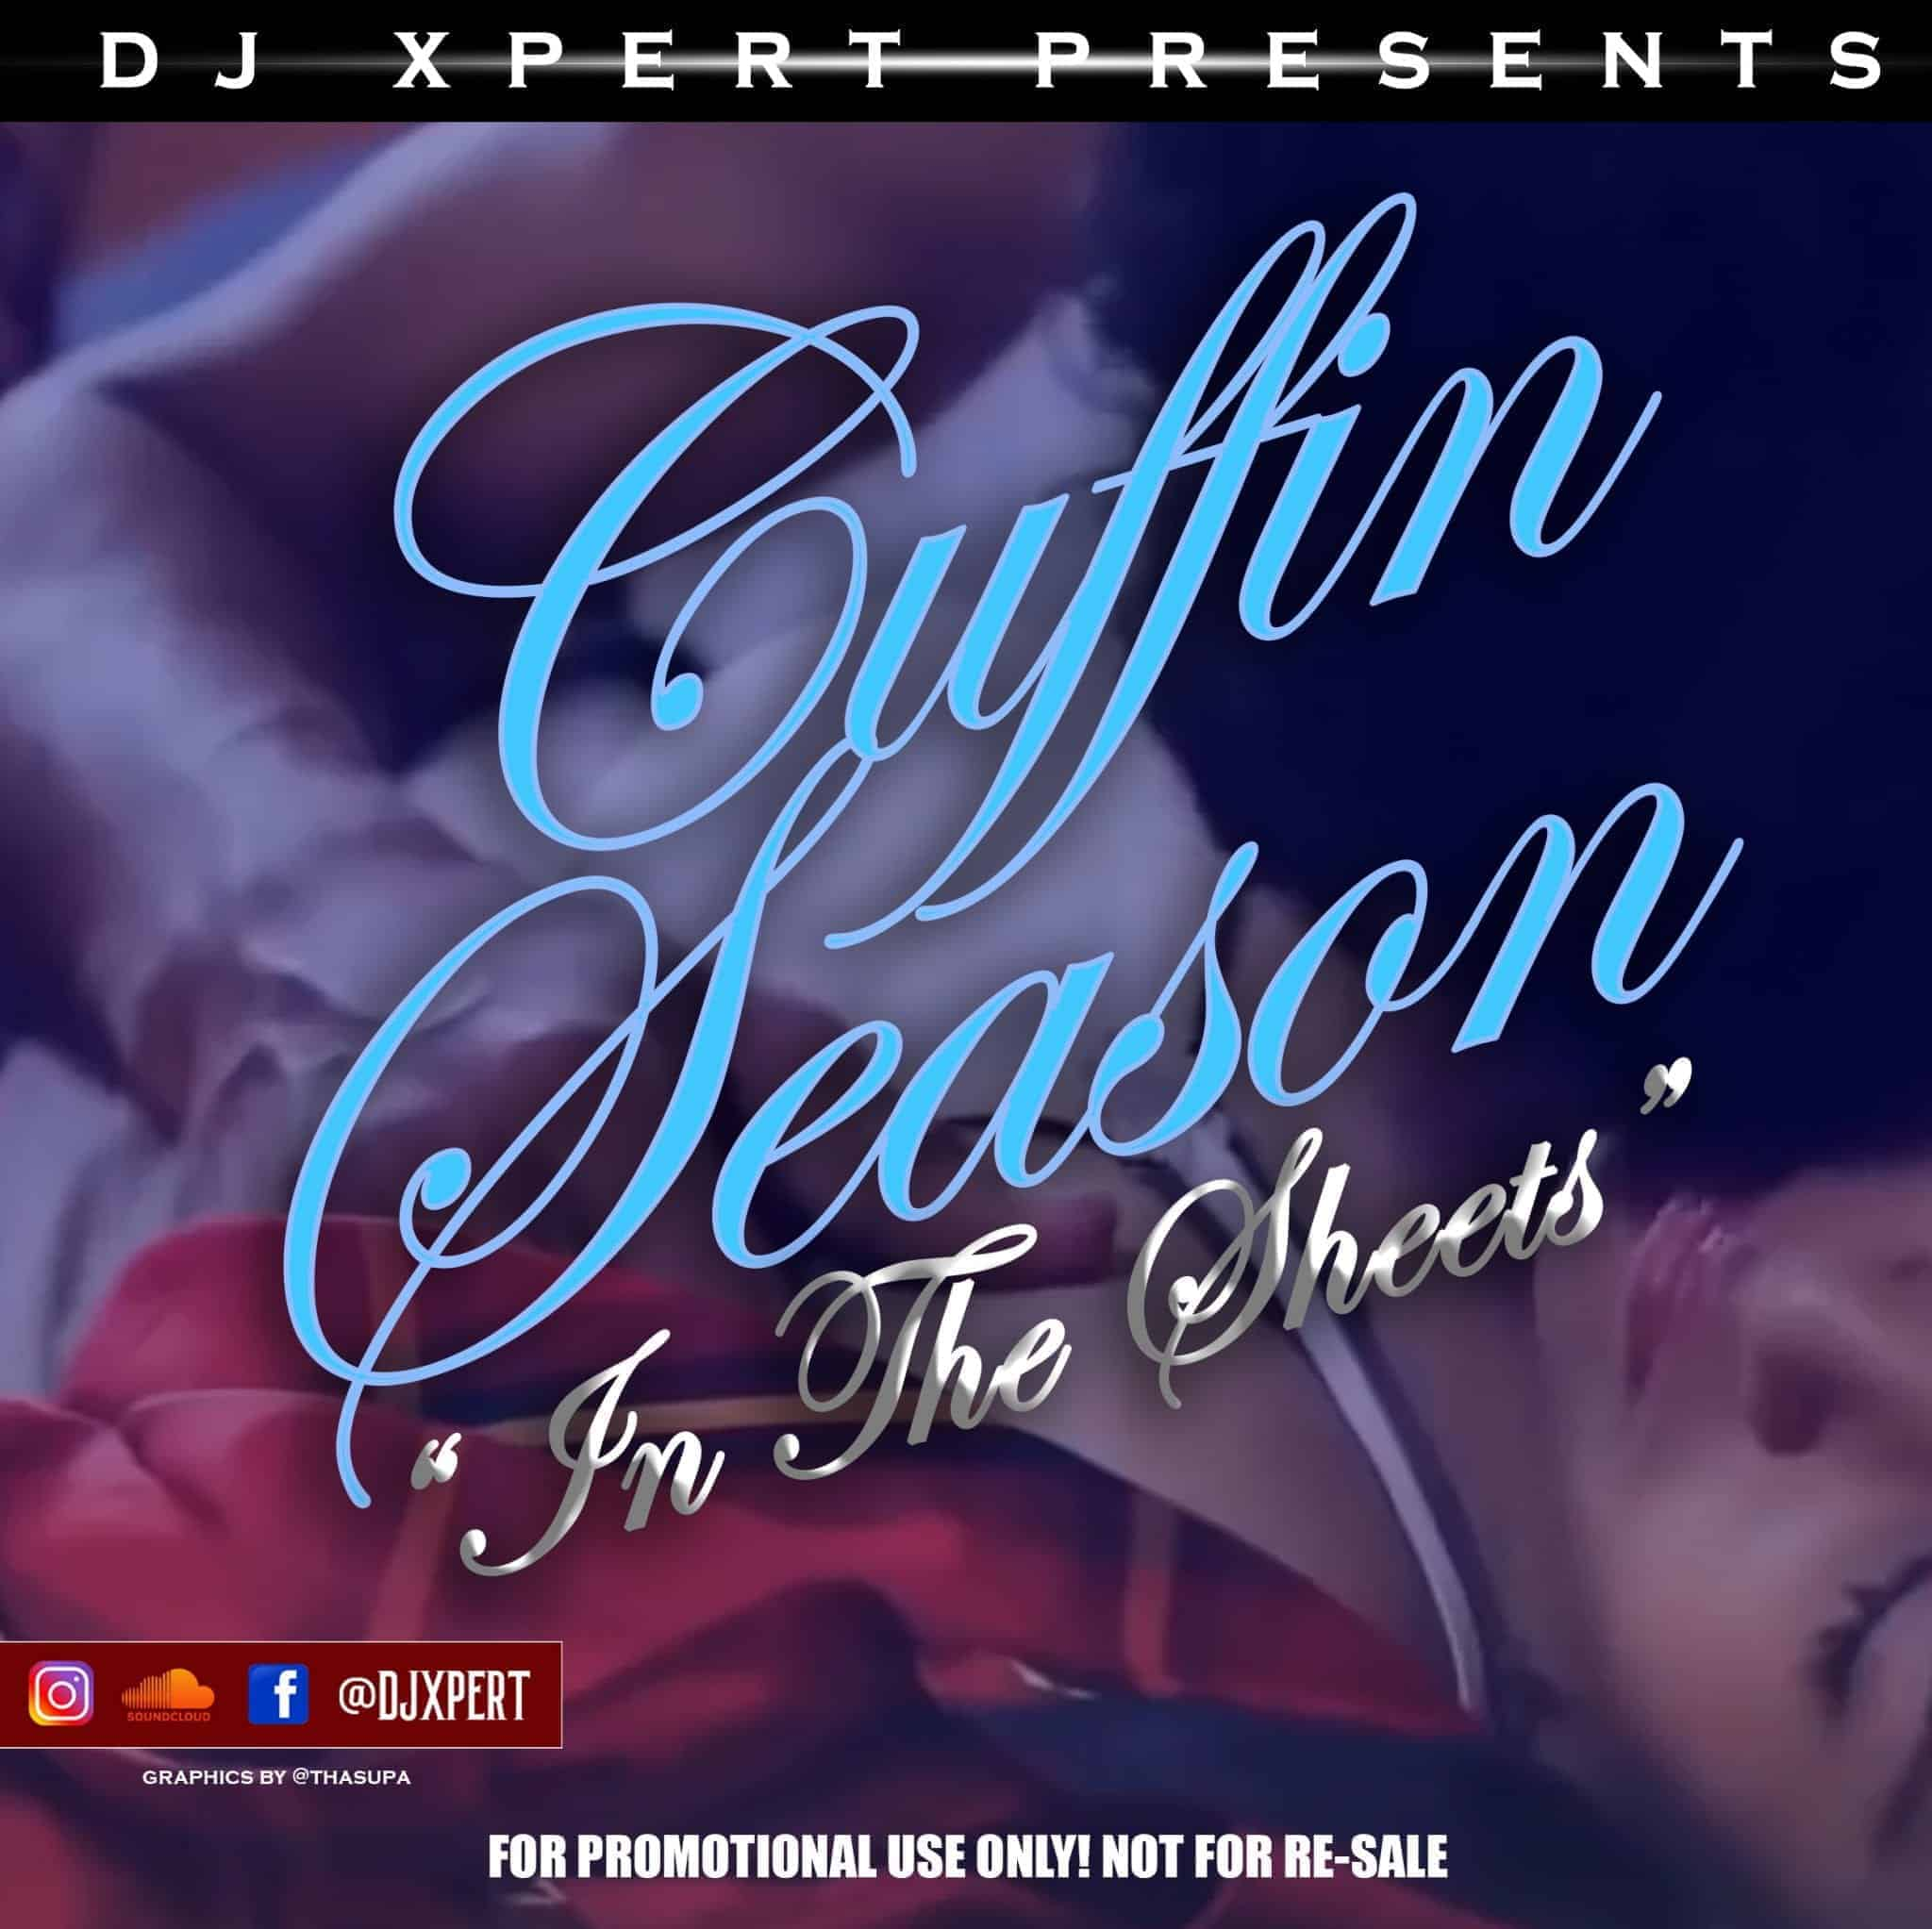 Dj Xpert Presents Cuffin Season pt 2. In the Sheets